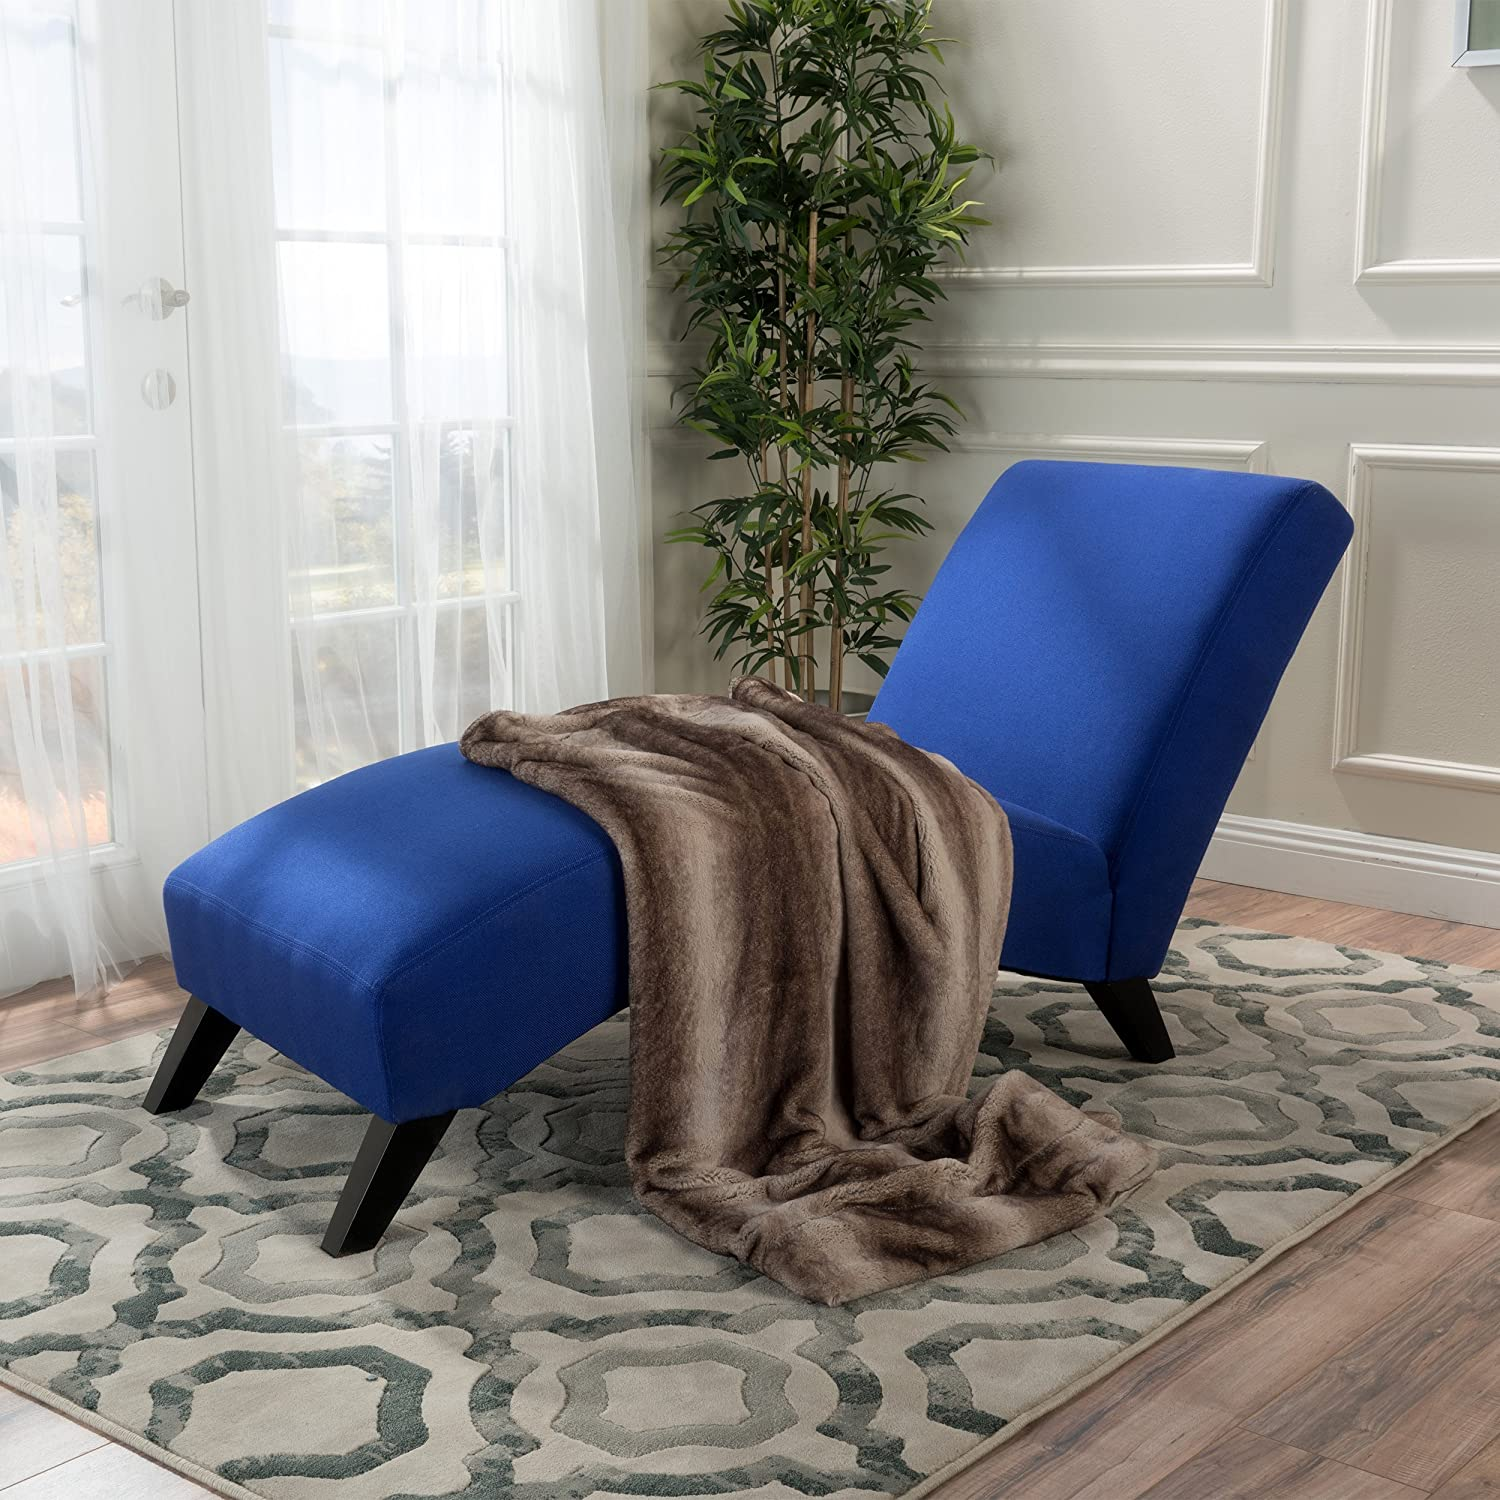 Swanson Royal Blue Fabric Chaise Lounge GDF Studio